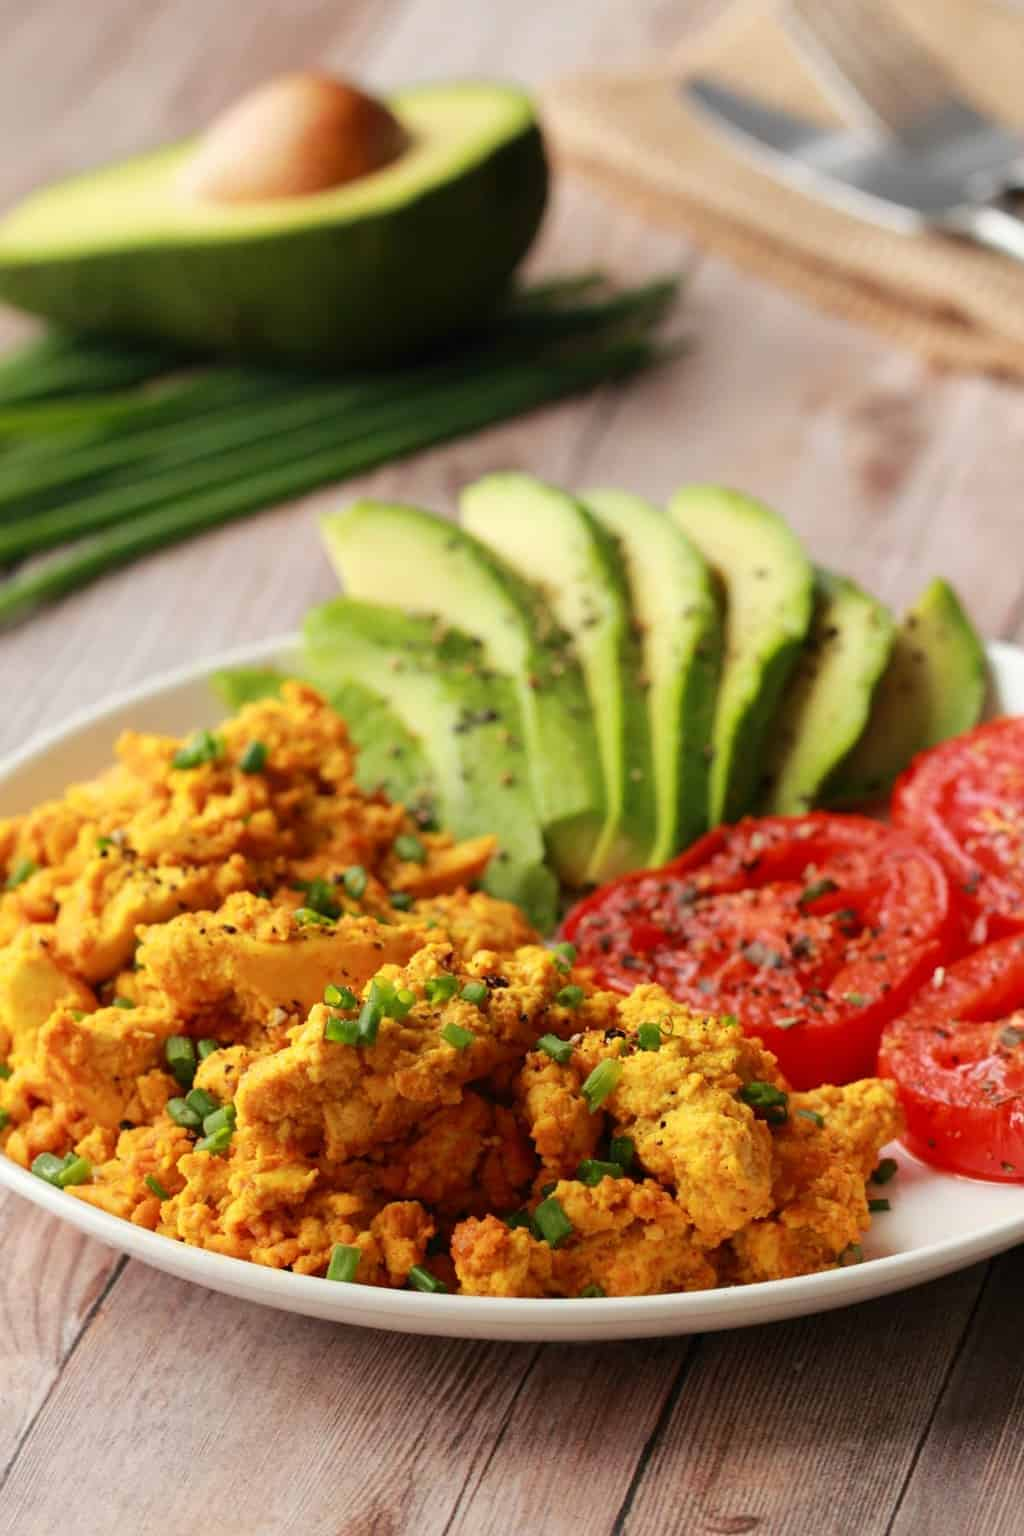 Vegan Tofu Scramble topped with chopped chives on a white plate with fried tomato and sliced avocado.